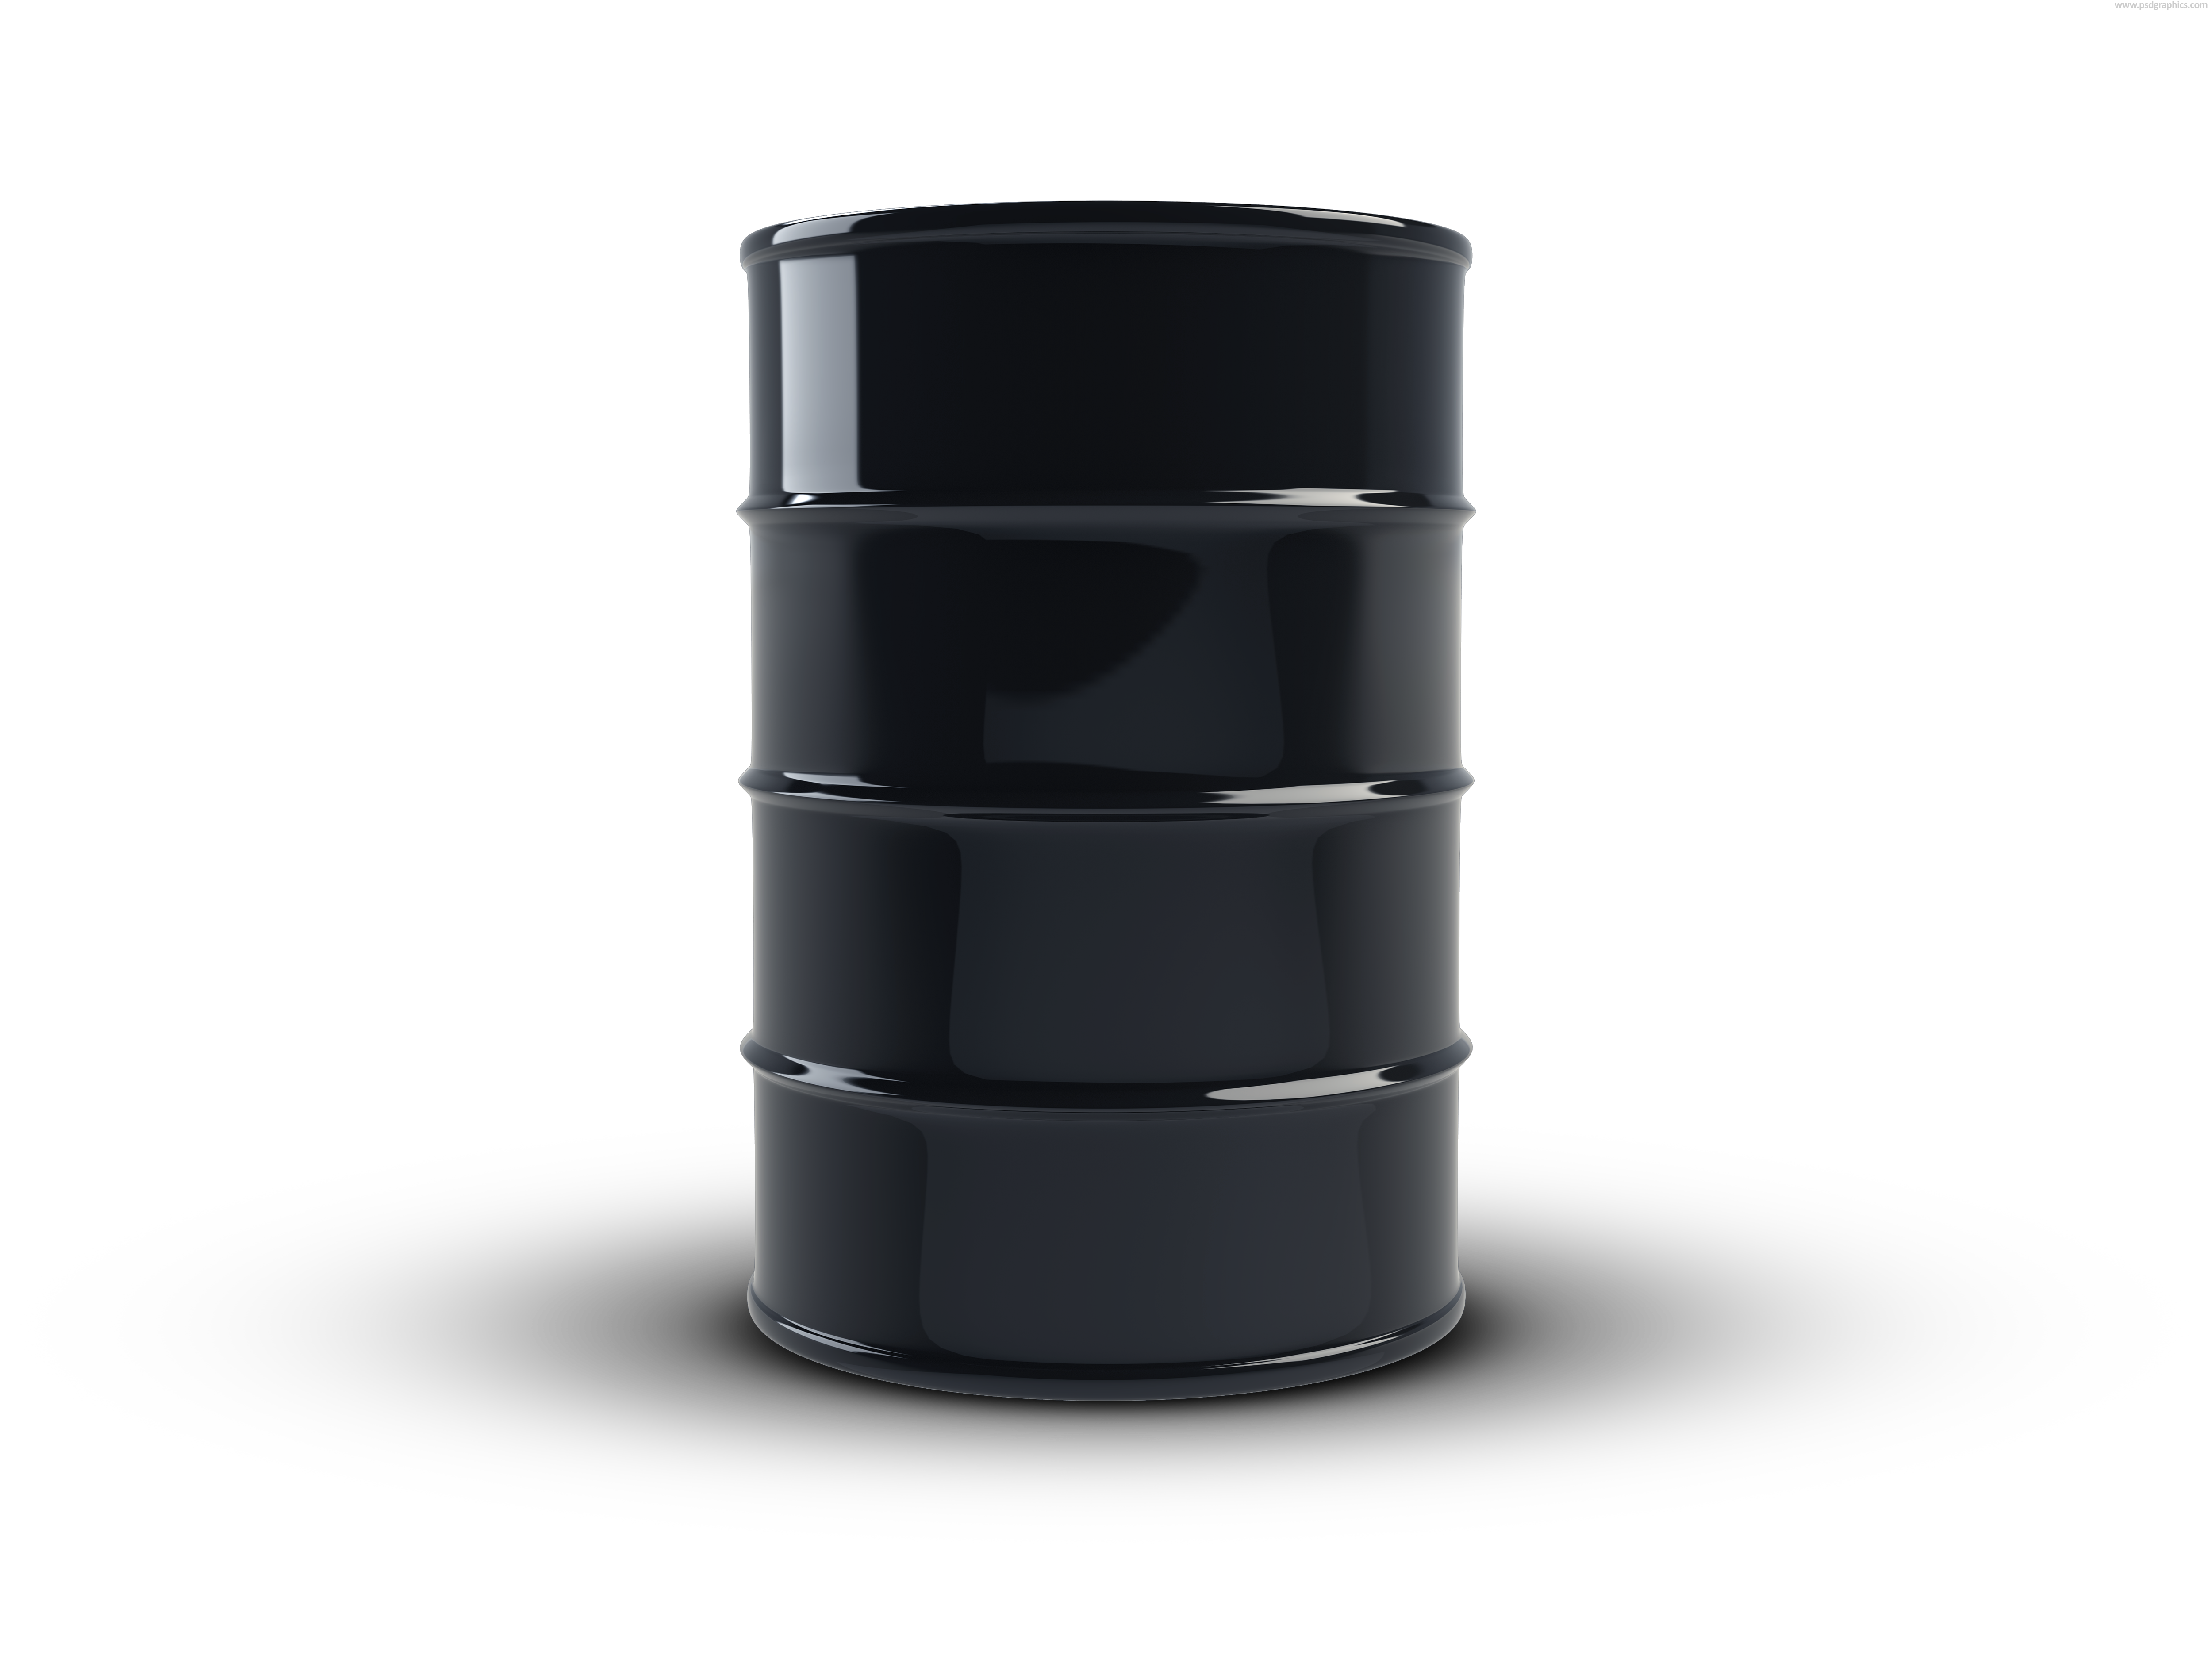 High Resolution Barrel Png Clipart image #20862